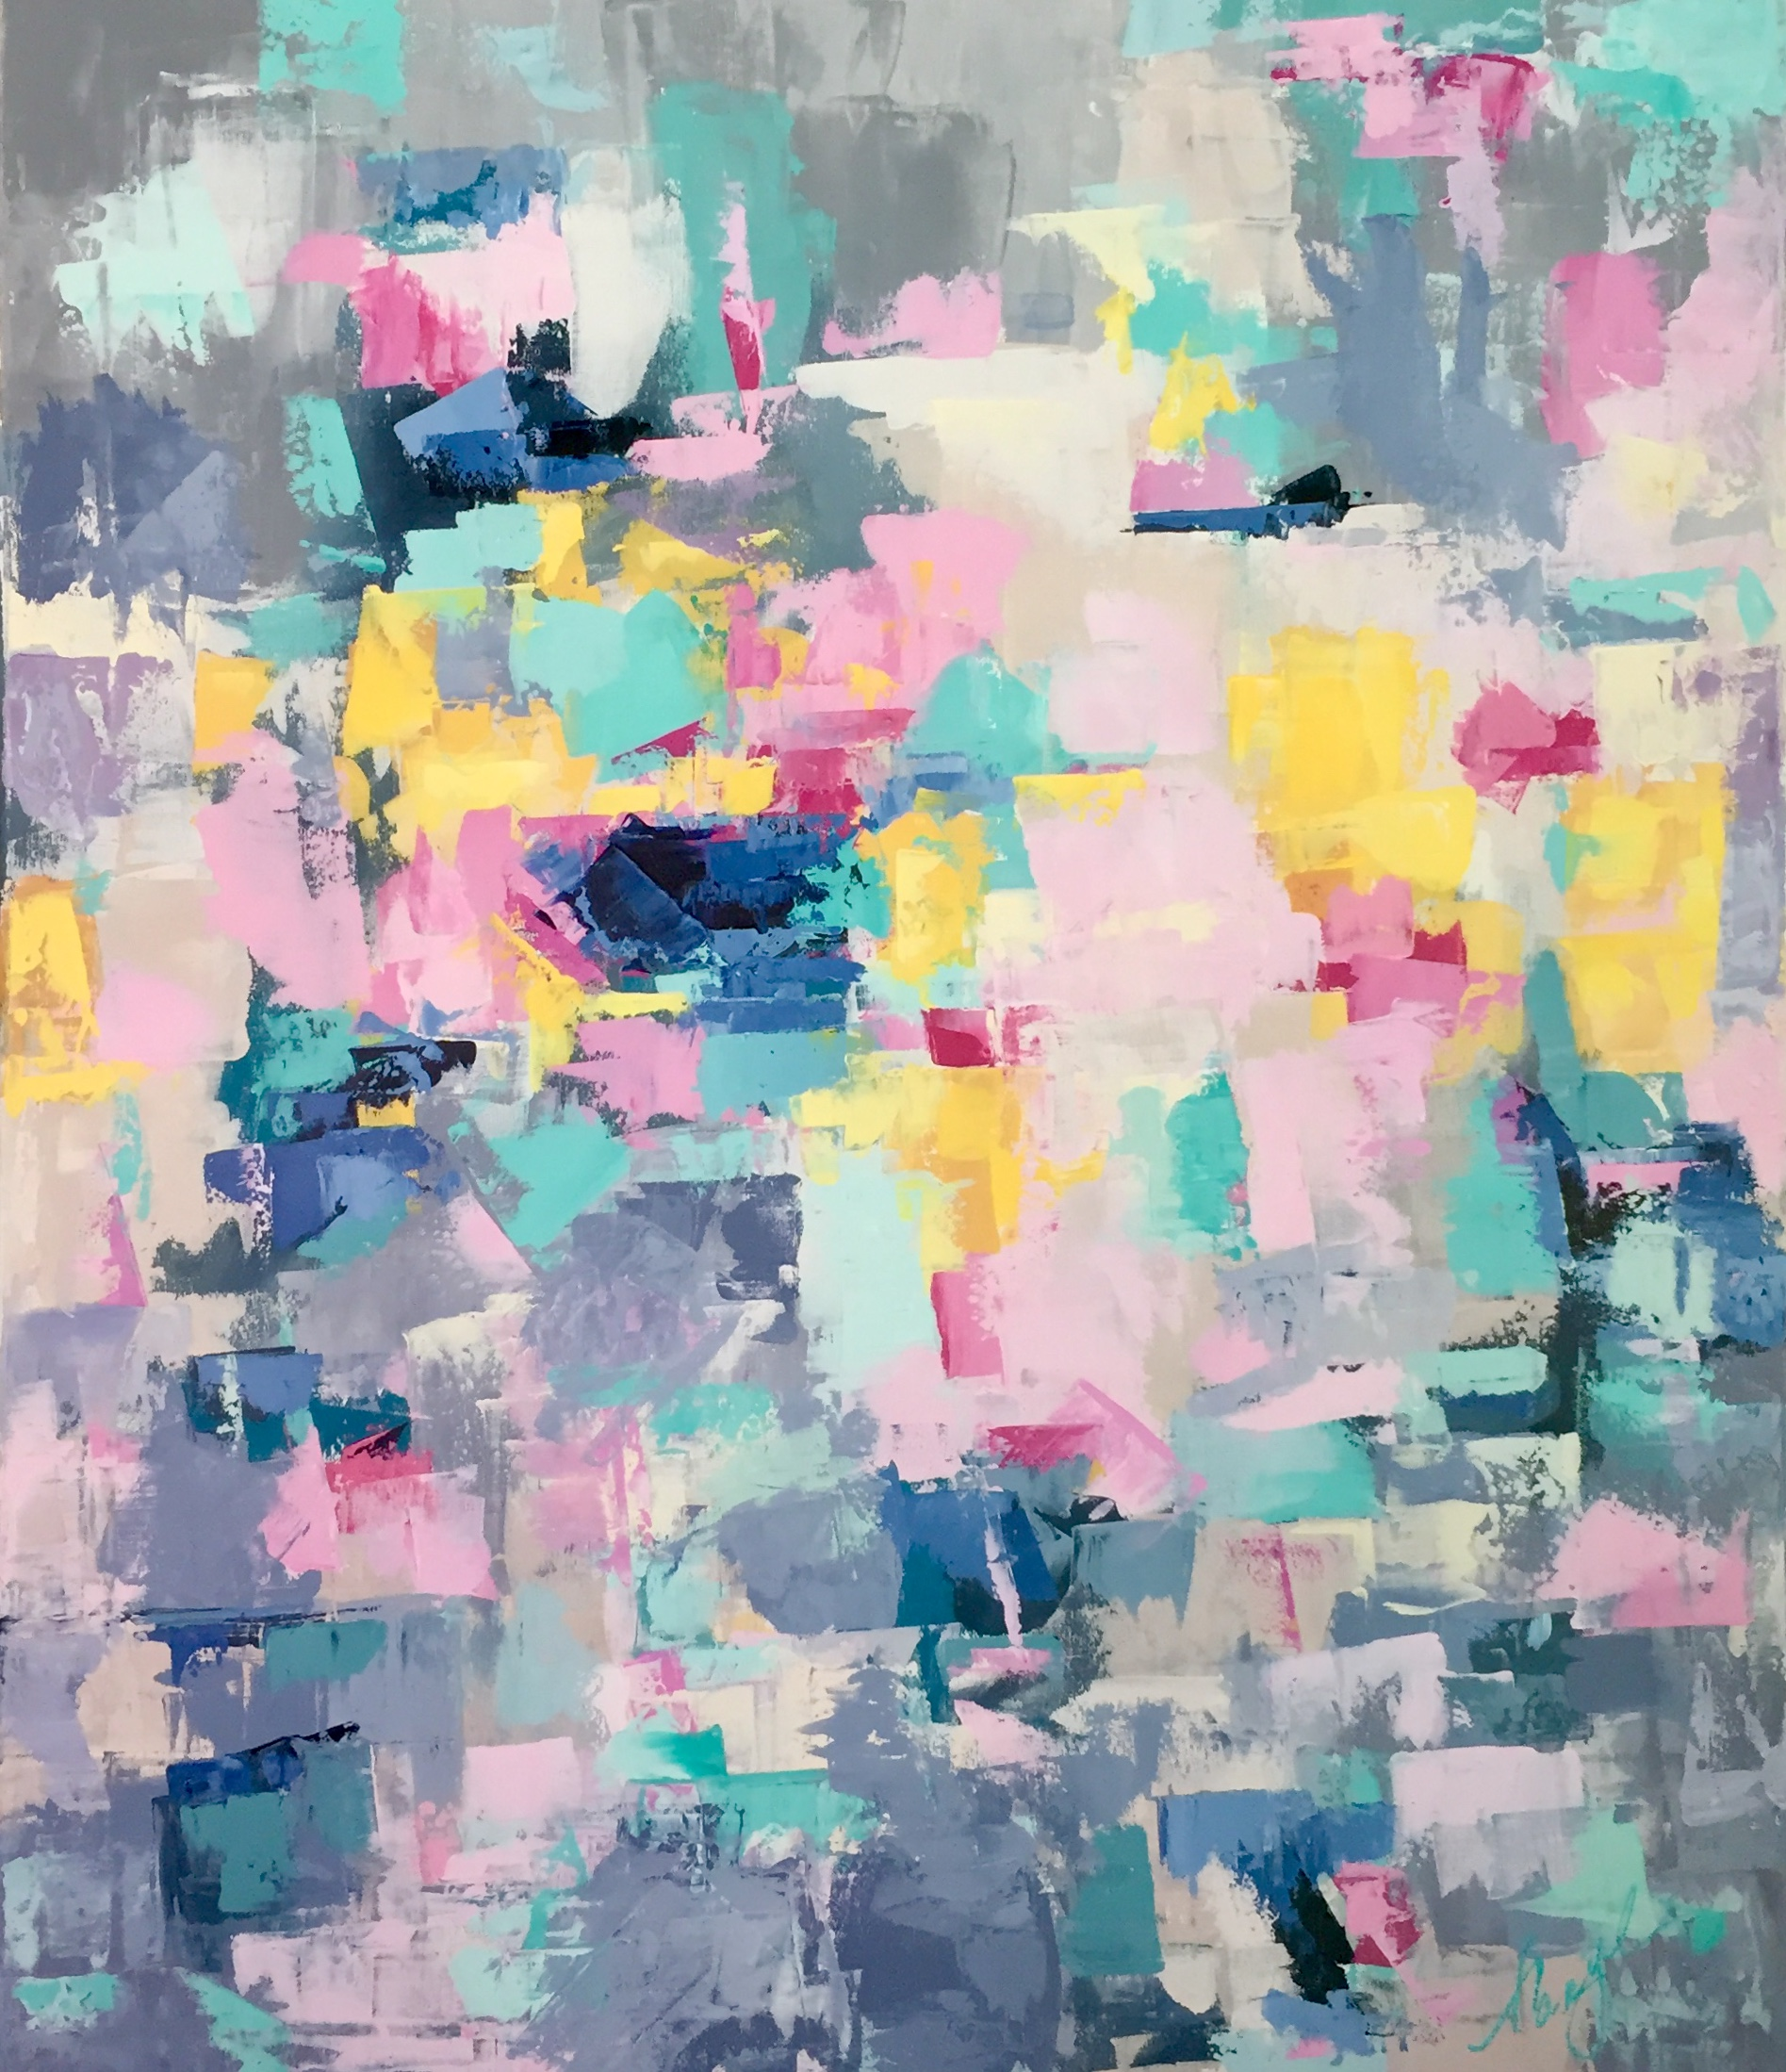 """Painting - """"Prevailing Light"""""""